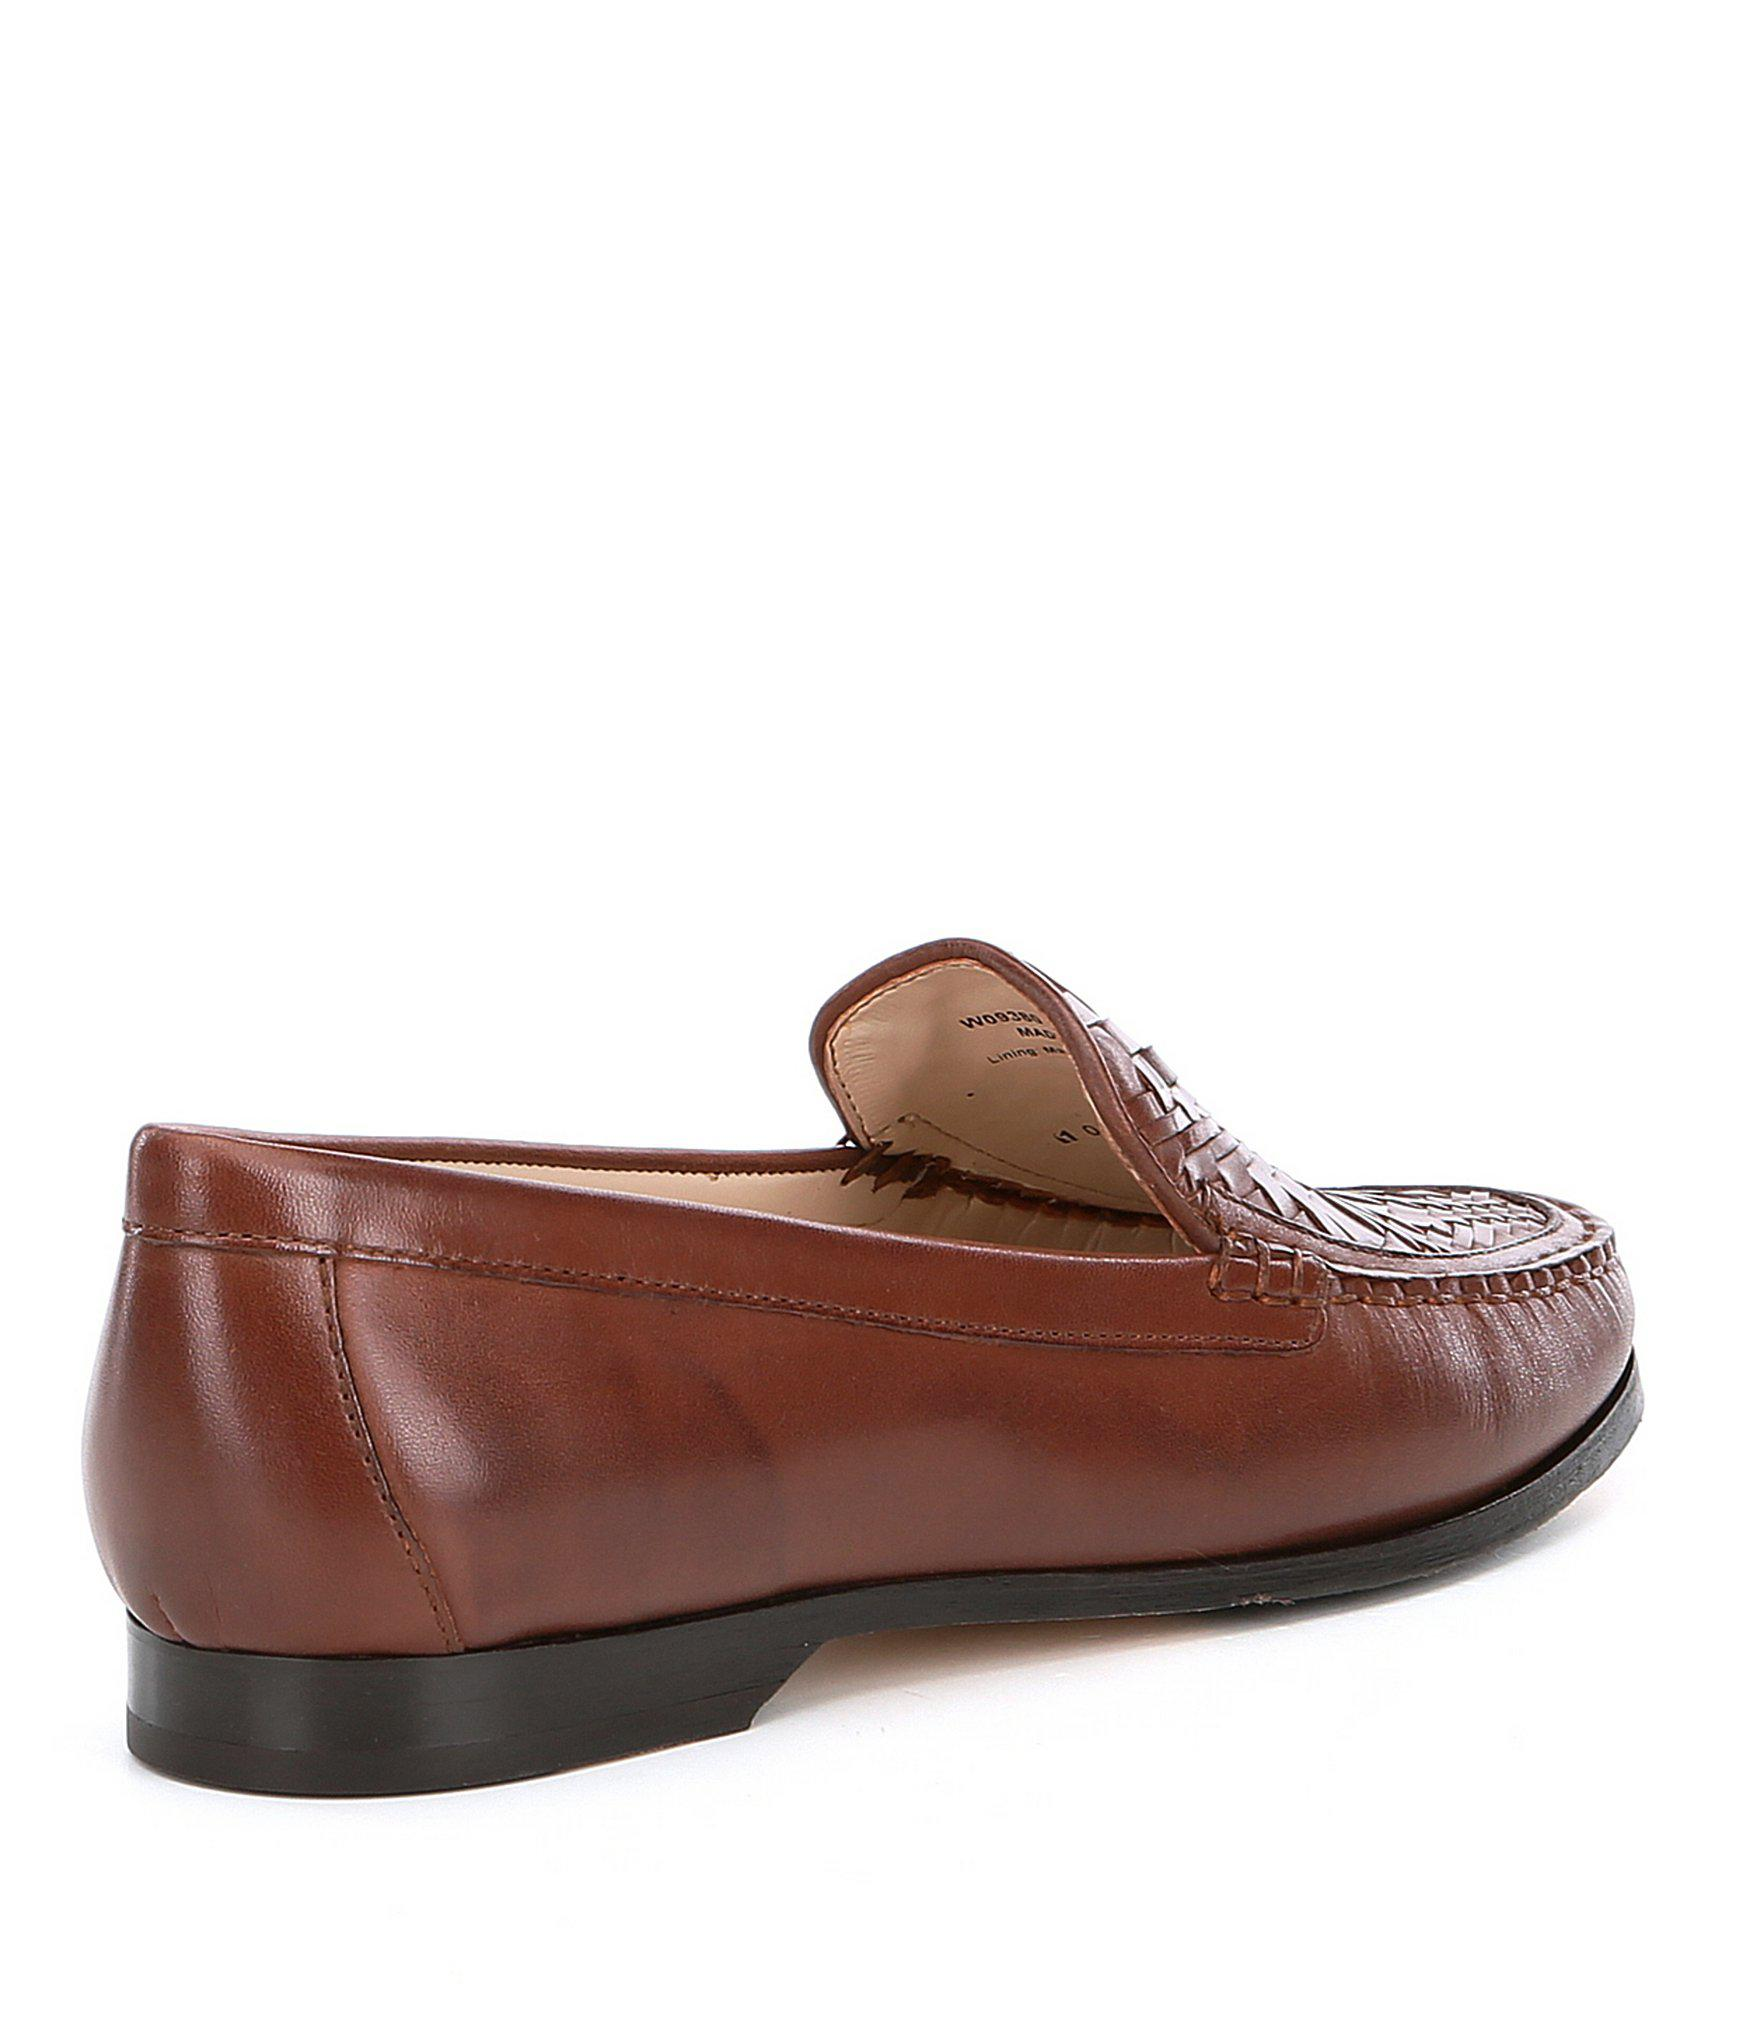 0e6abdb0958 Lyst - Cole Haan Women ́s Pinch Genevieve Weave Loafers in Brown